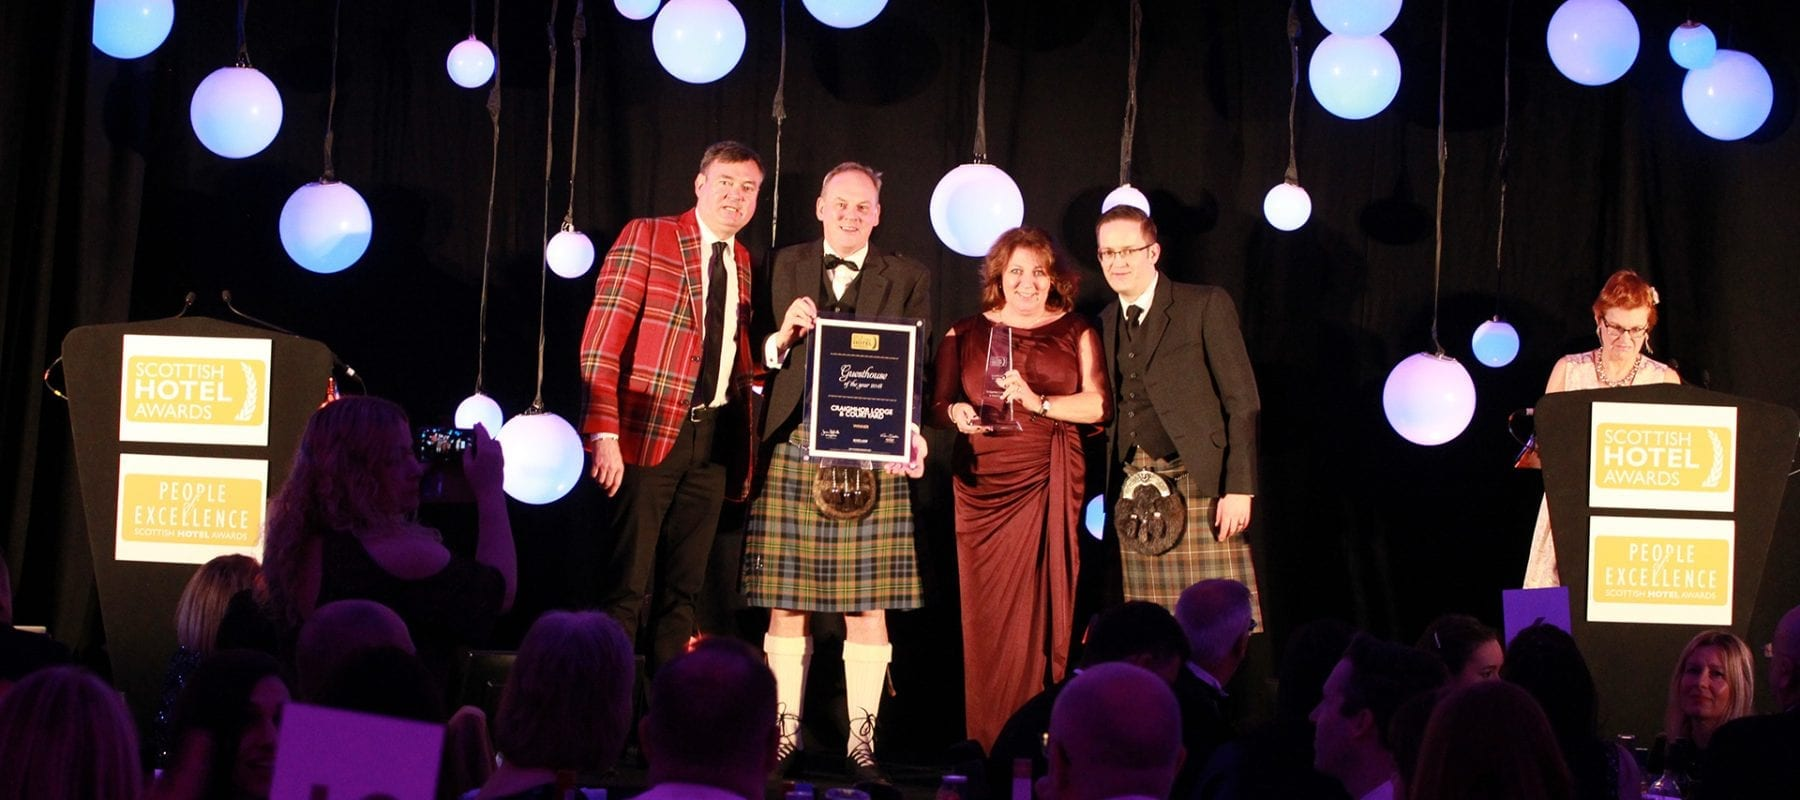 Winner of Best Guest House in Scotland 2019 at the Scottish Hotel Awards